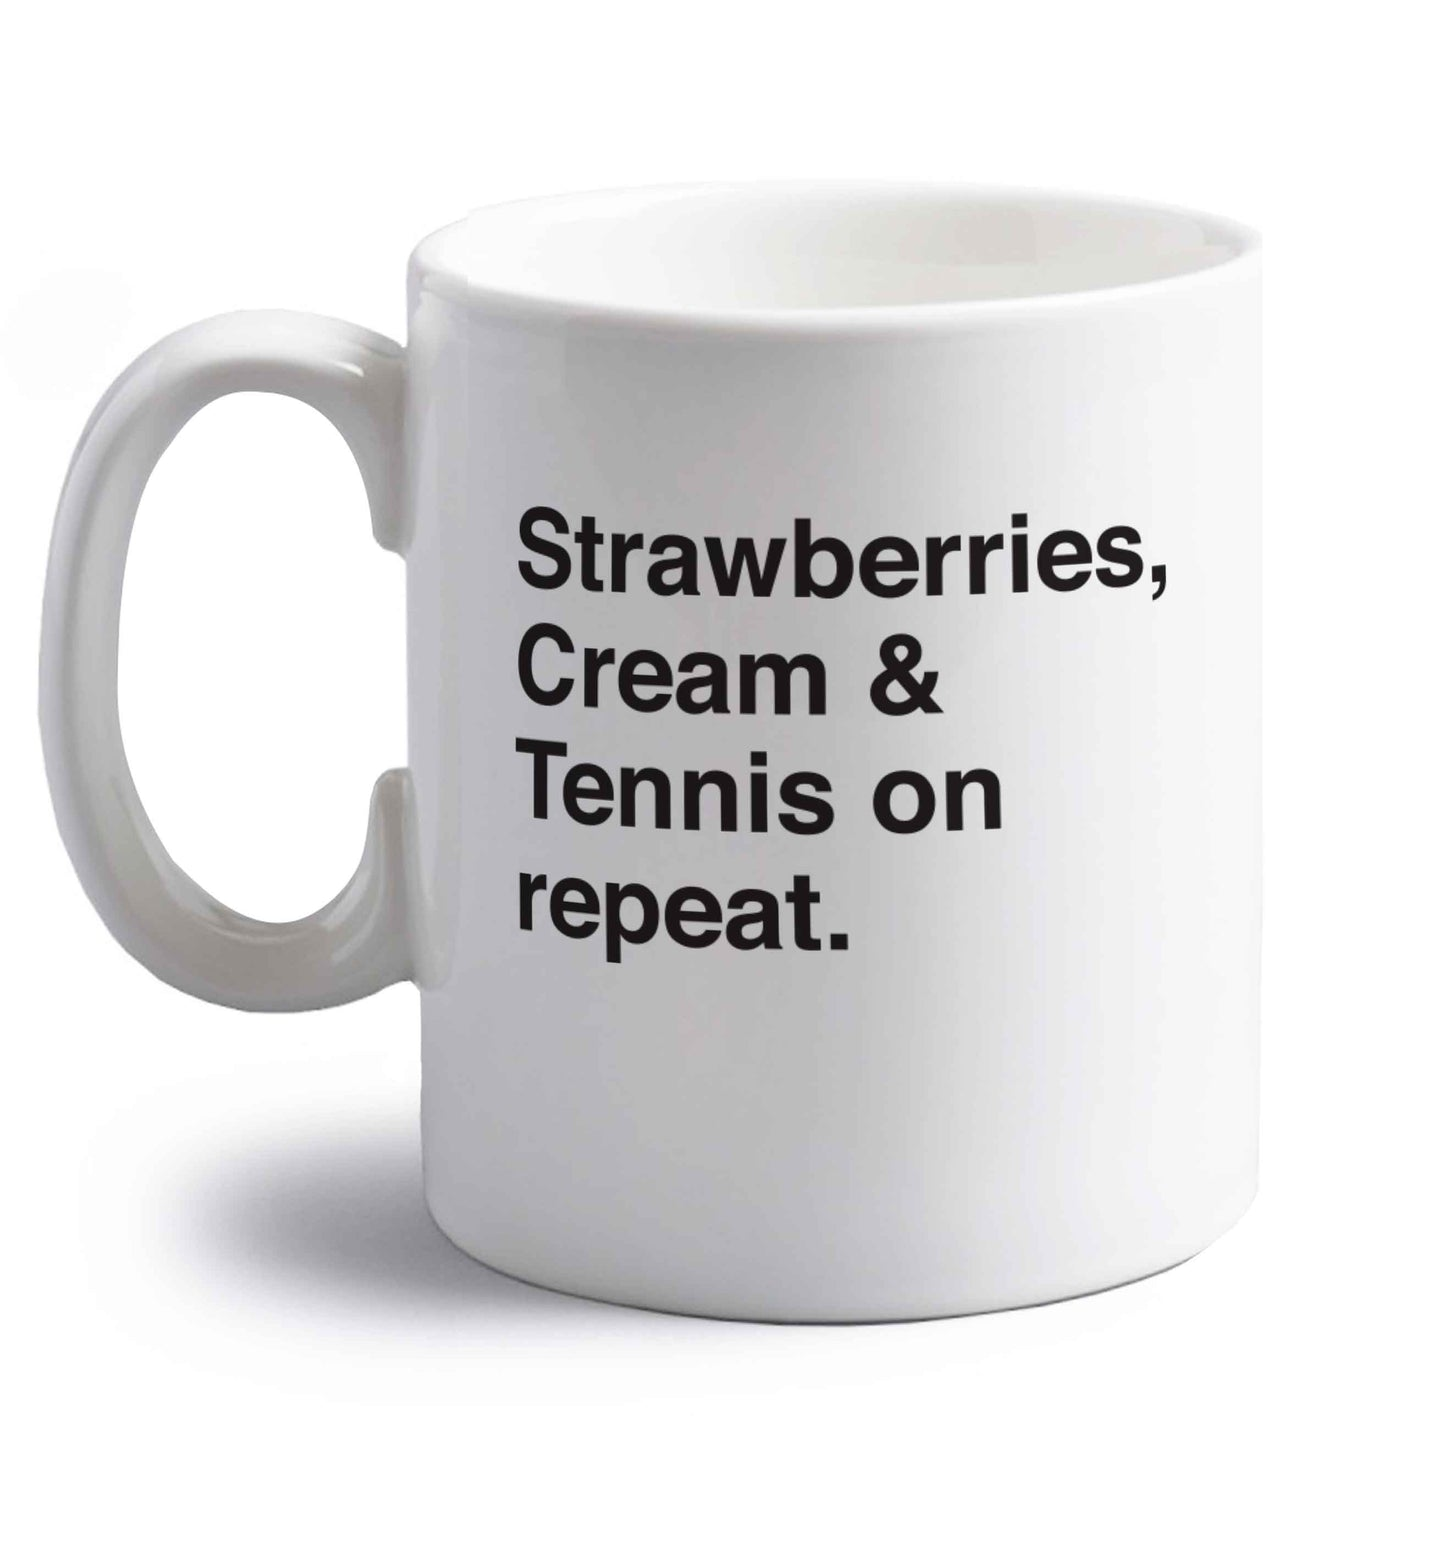 Strawberries, cream and tennis on repeat right handed white ceramic mug